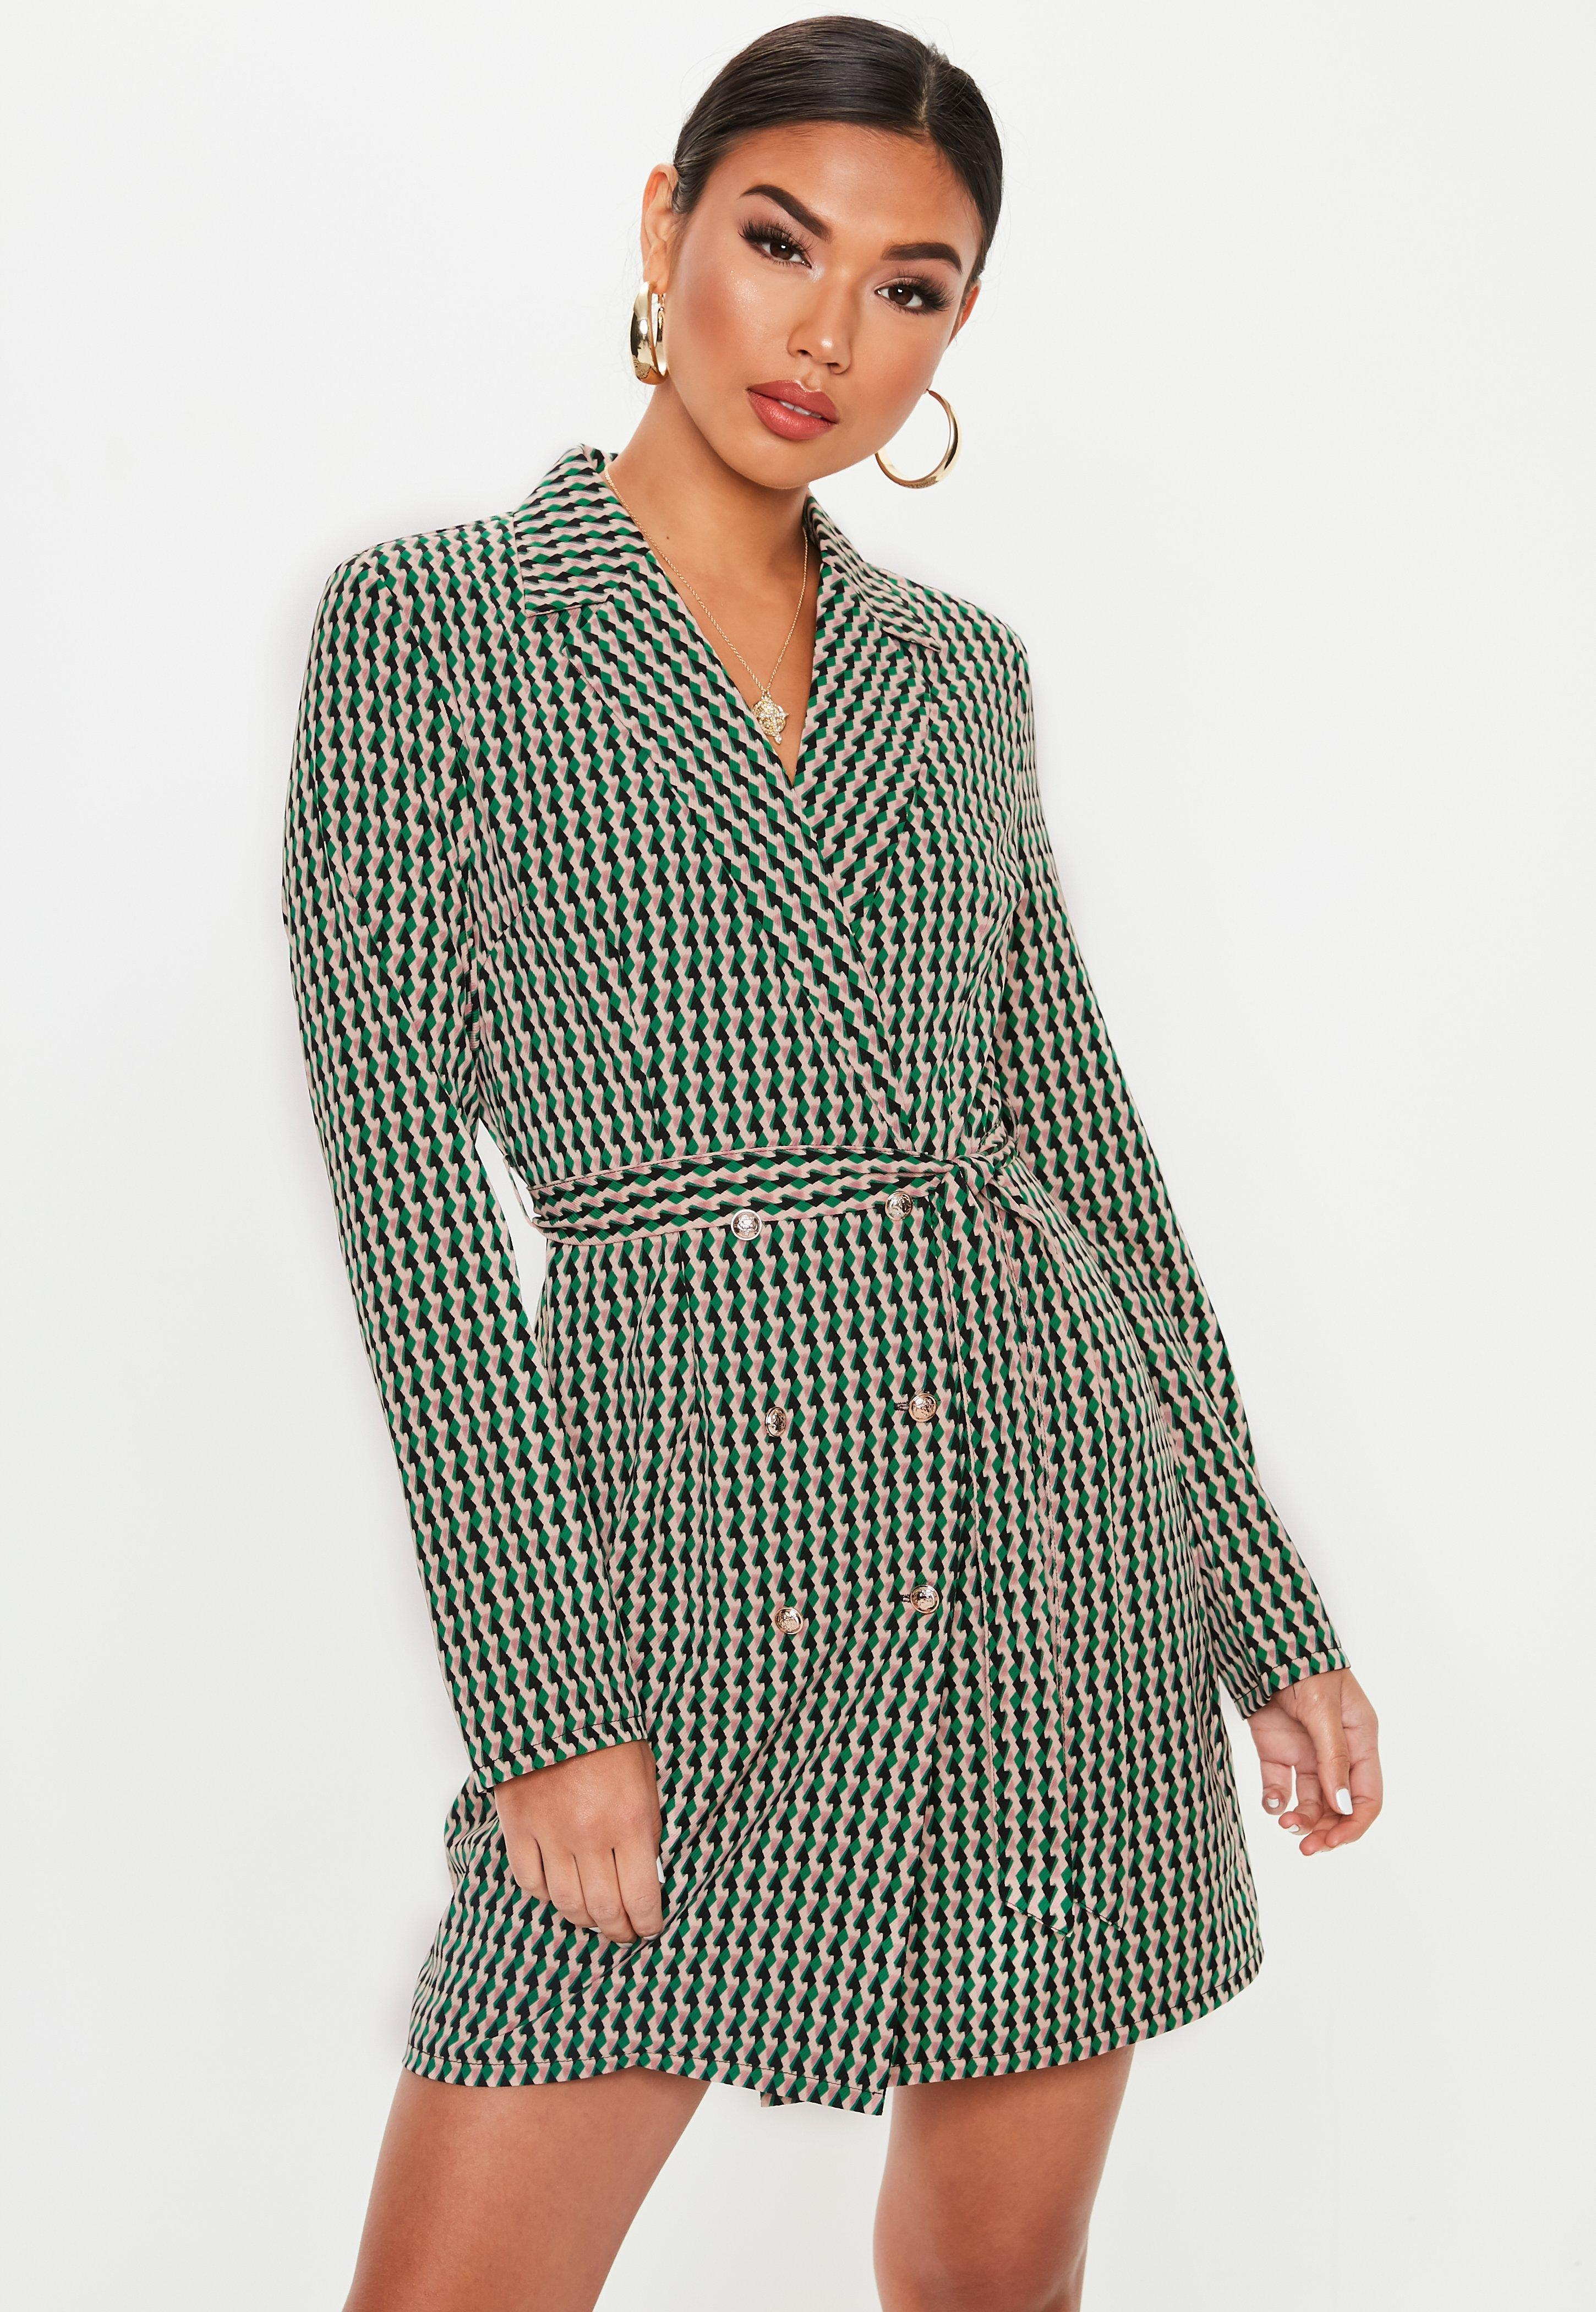 48dcb7b5166 Lyst - Missguided Green Geometric Print Blazer Dress in Green